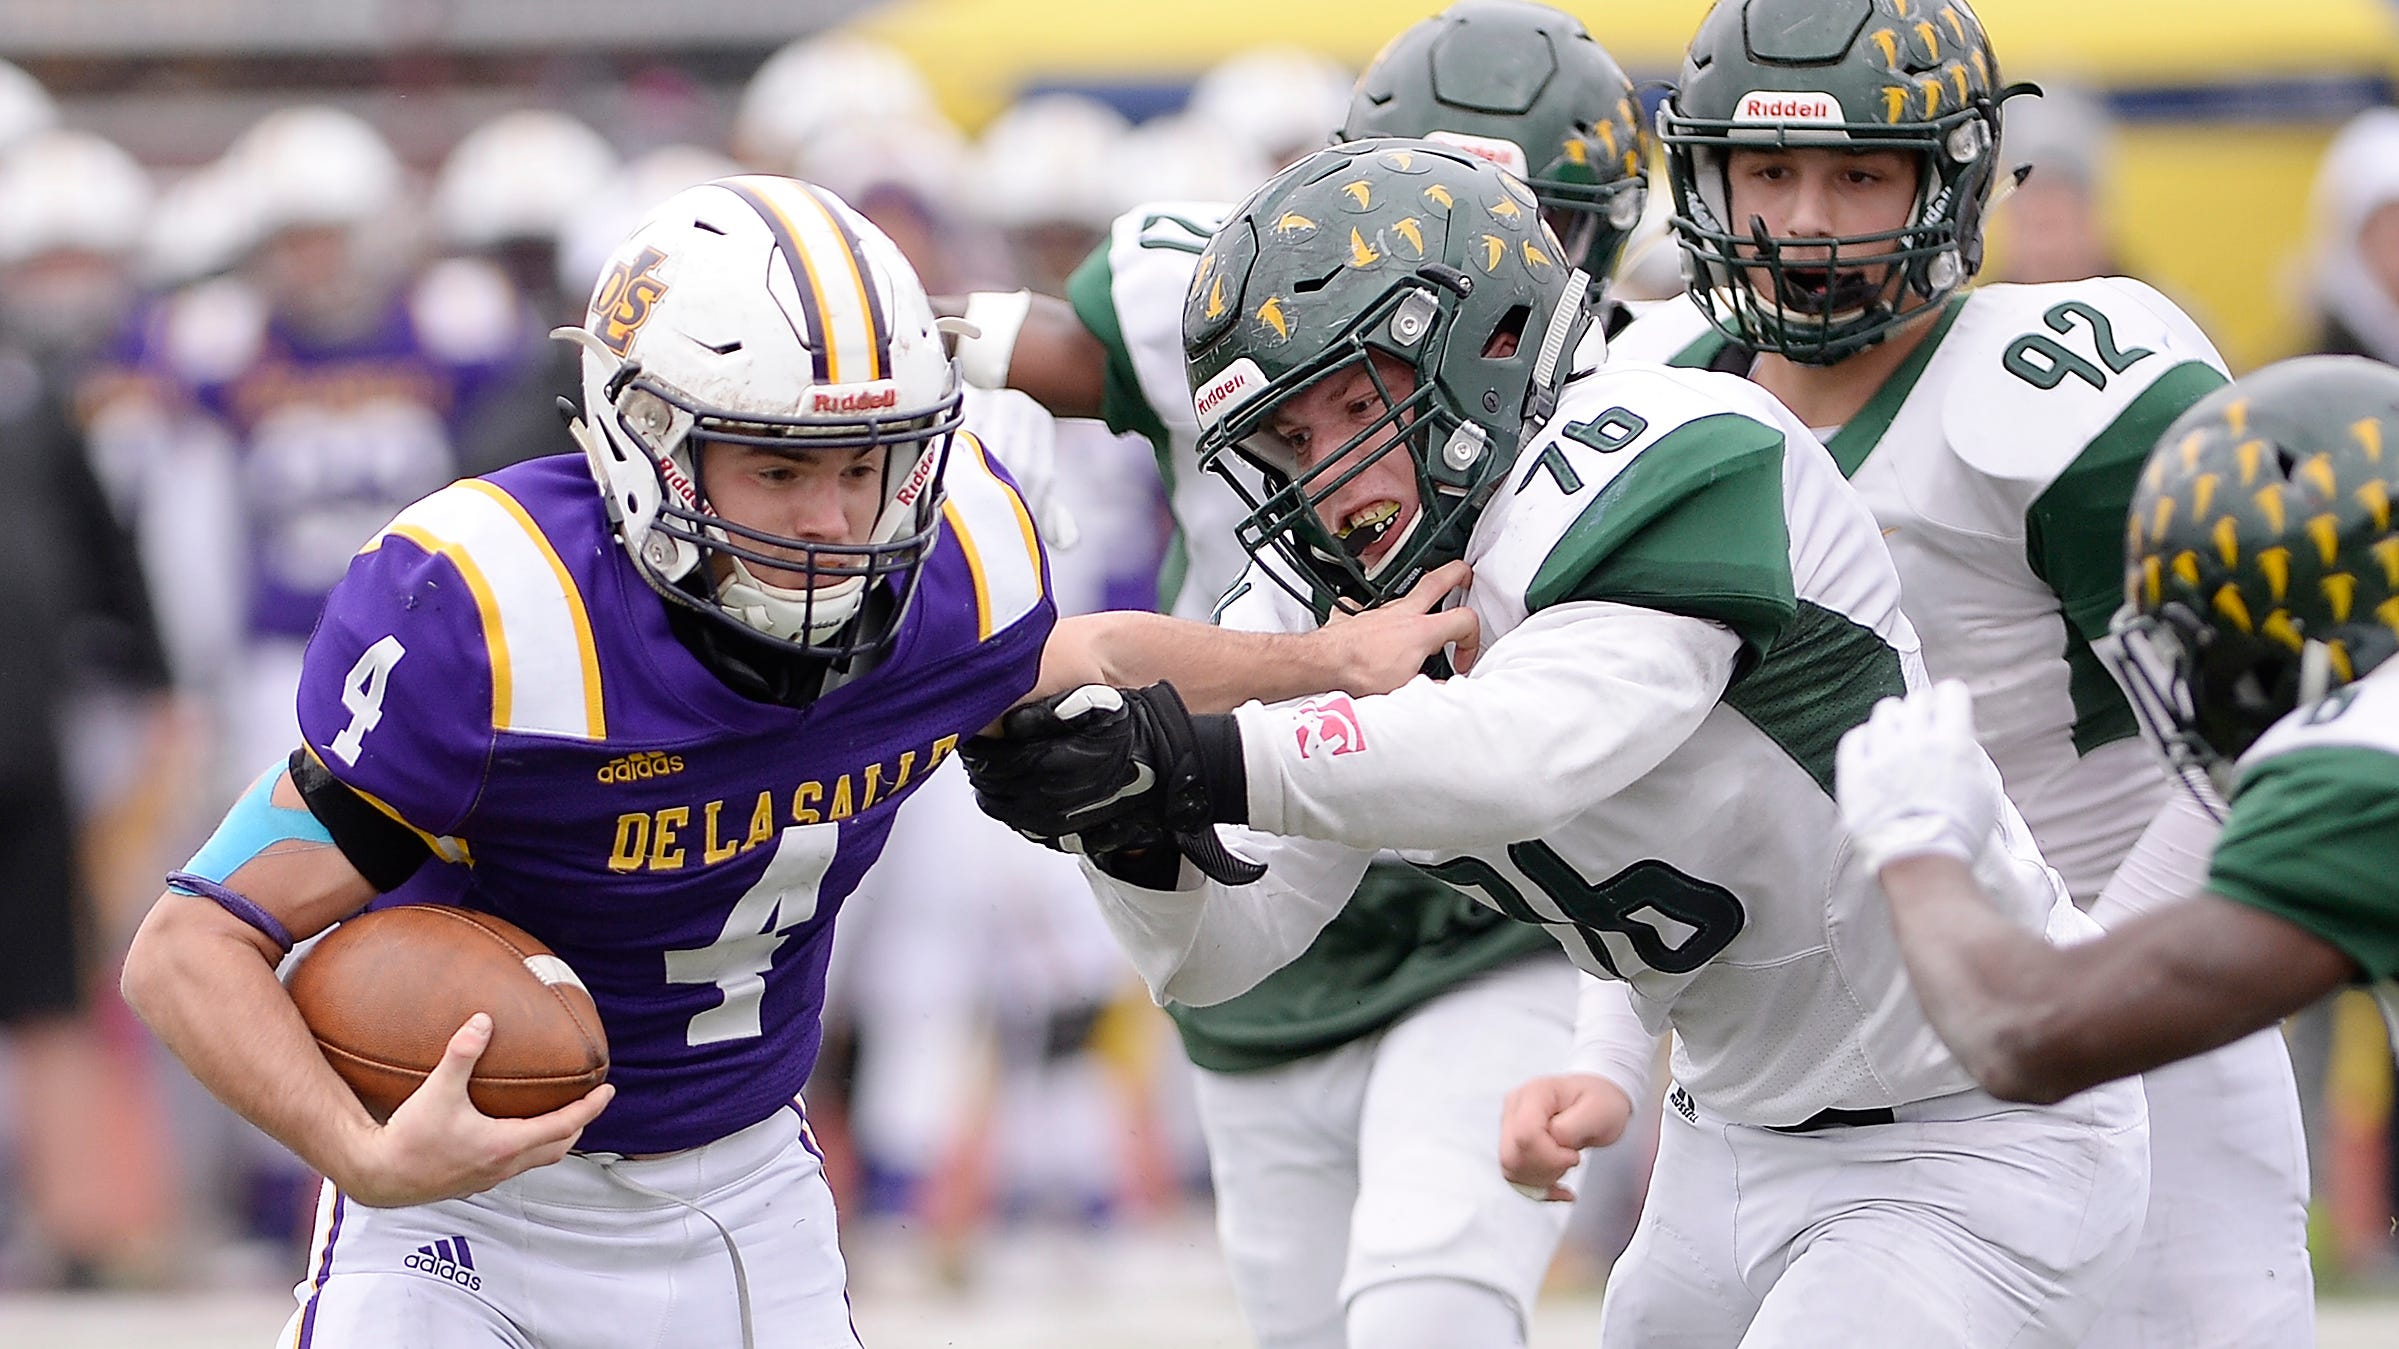 Warren De La Salle quarterback Nolan Schultz breaks the tackle of Birmingham Groves' Charlie Riddle in the third quarter.